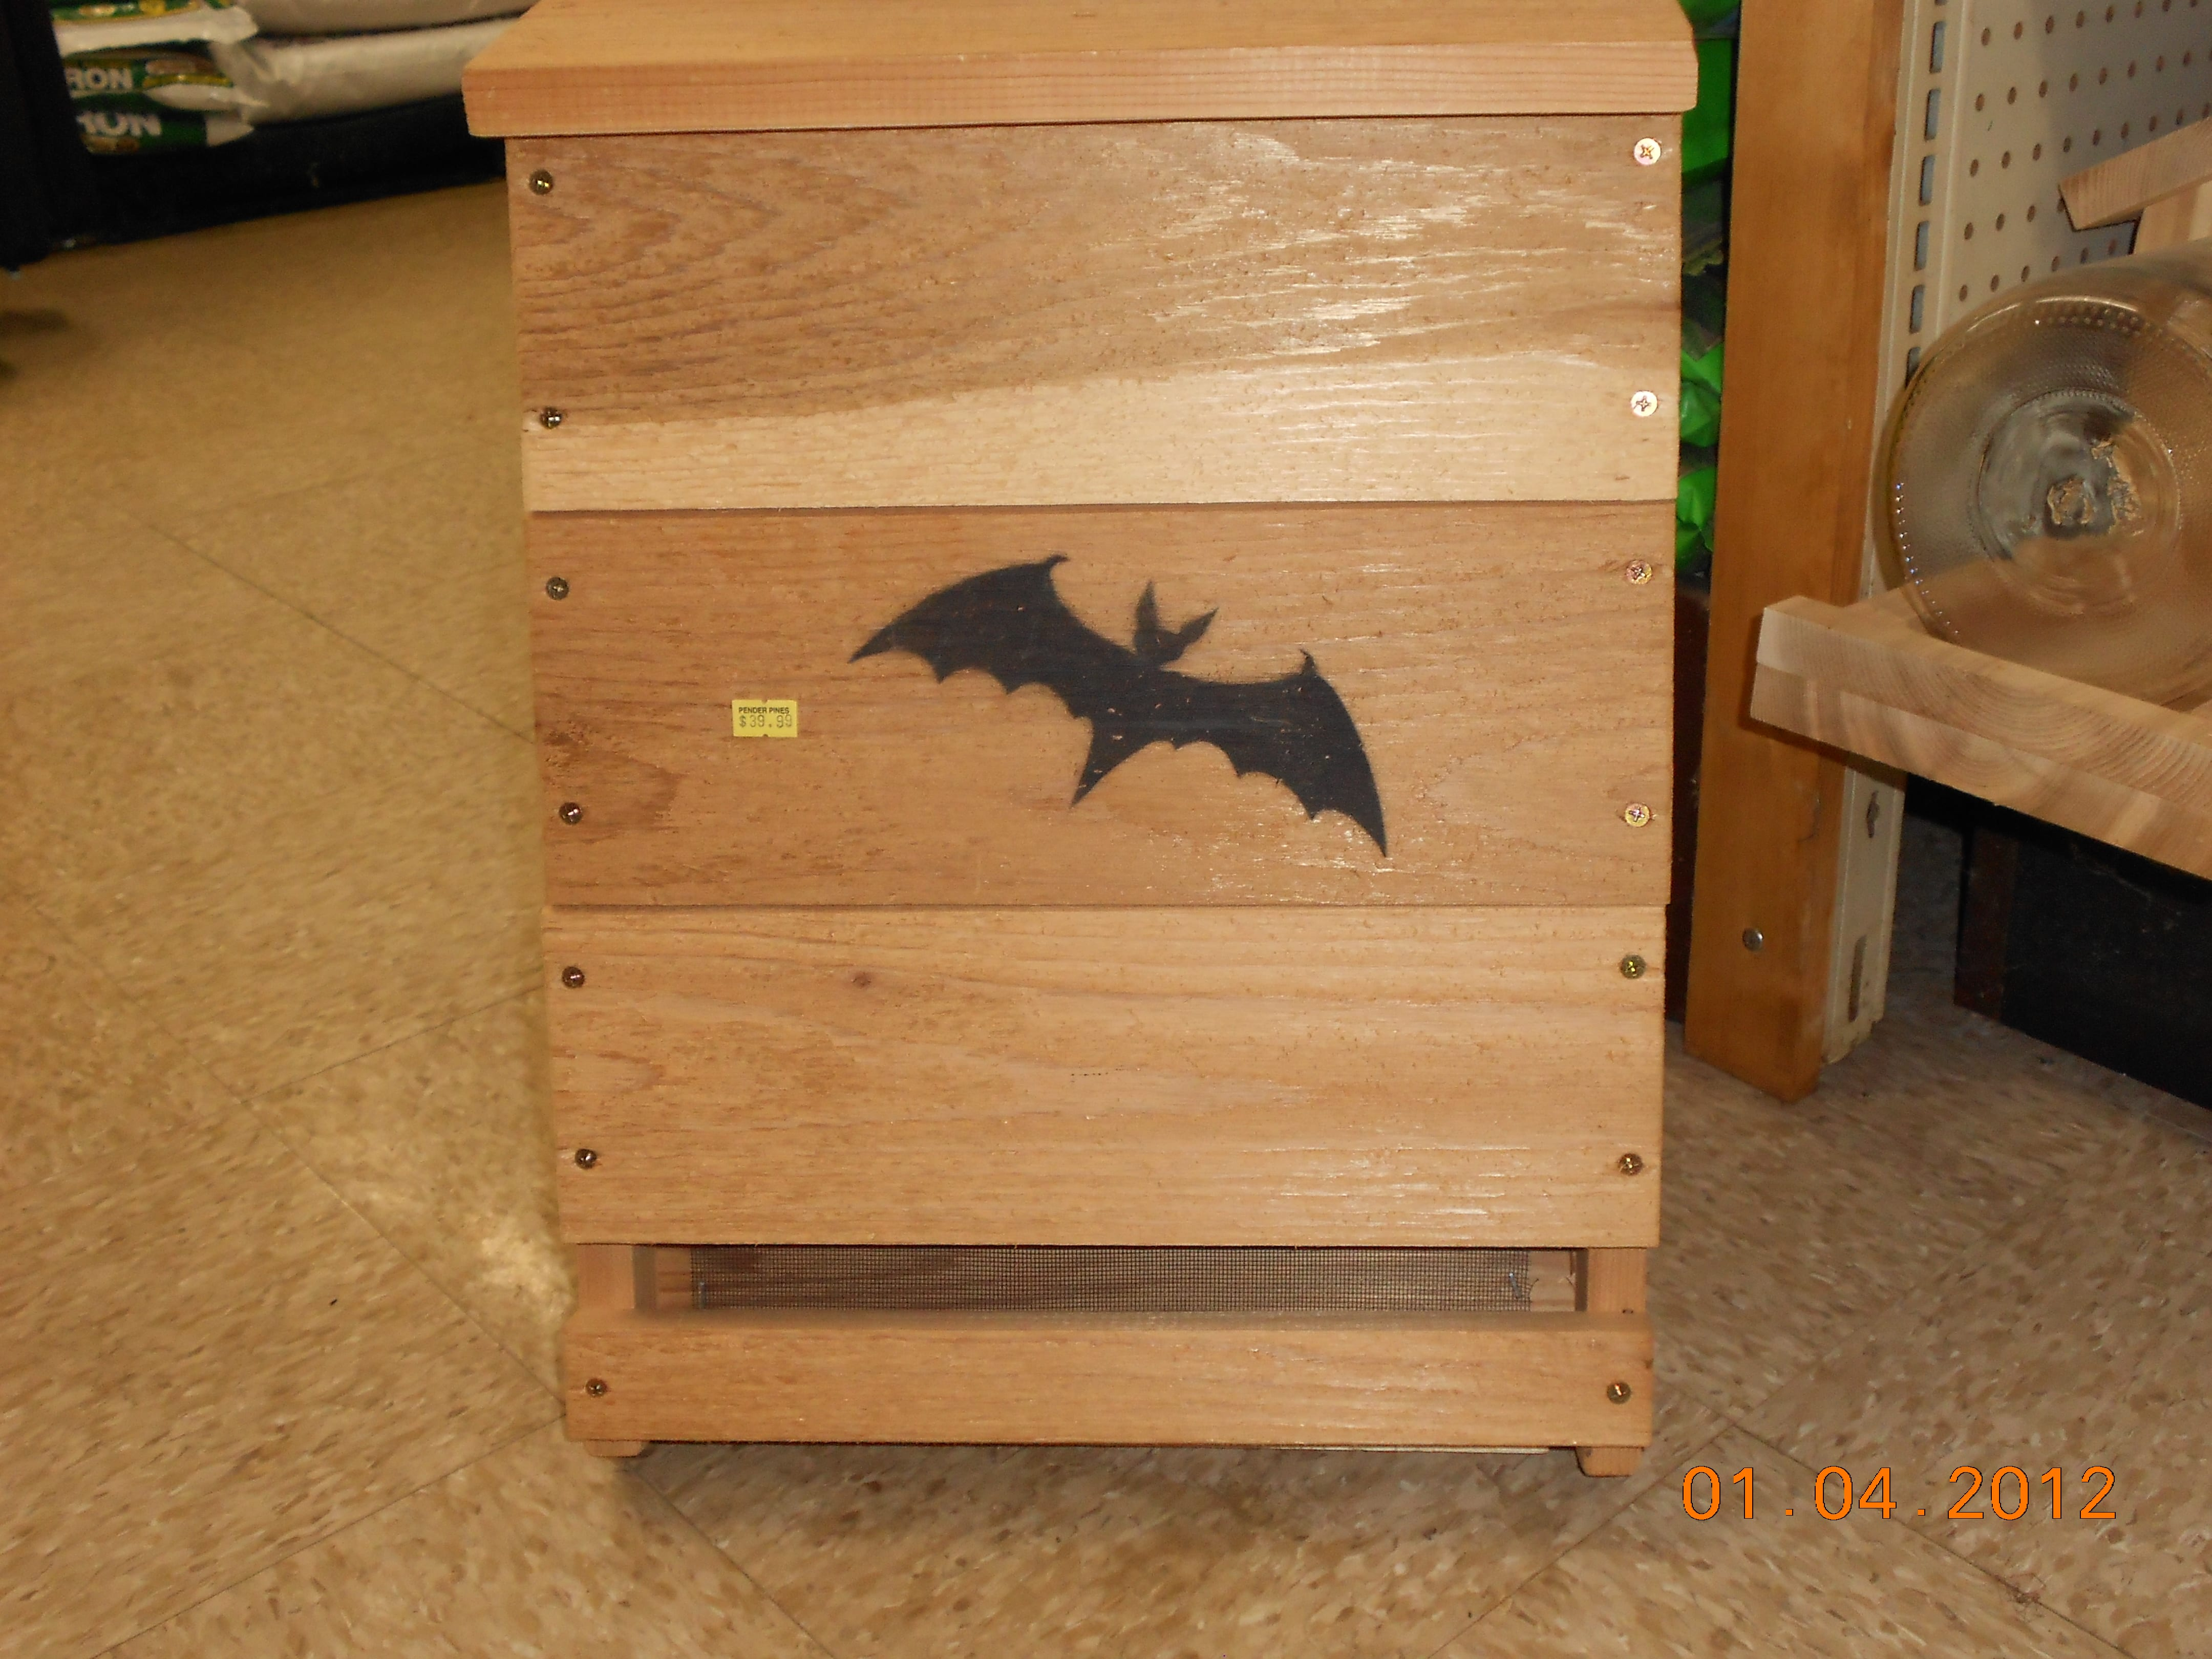 Building A Bat House To House Those Great Little Creatures